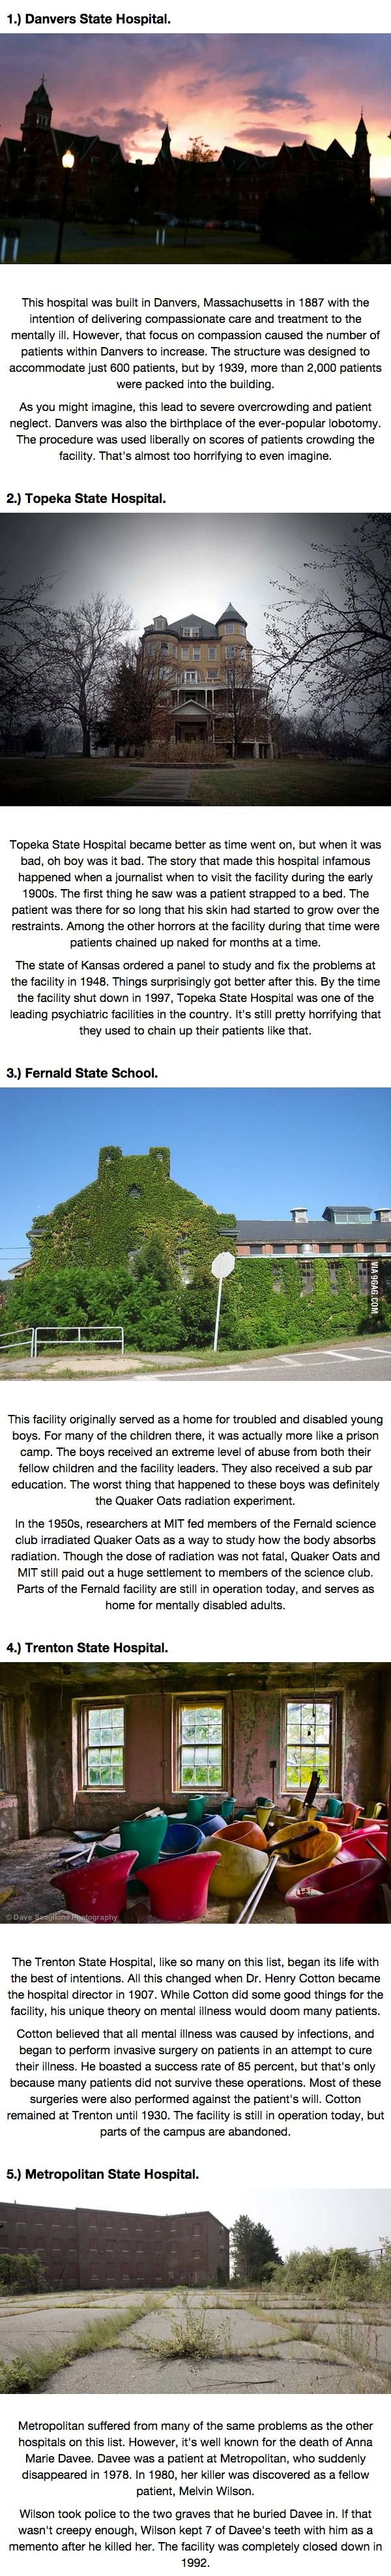 5 Abandoned Asylums Whose Backstories Would Make For Terrifying Movies.  ♦ℬїт¢ℌαℓї¢їøυ﹩♦